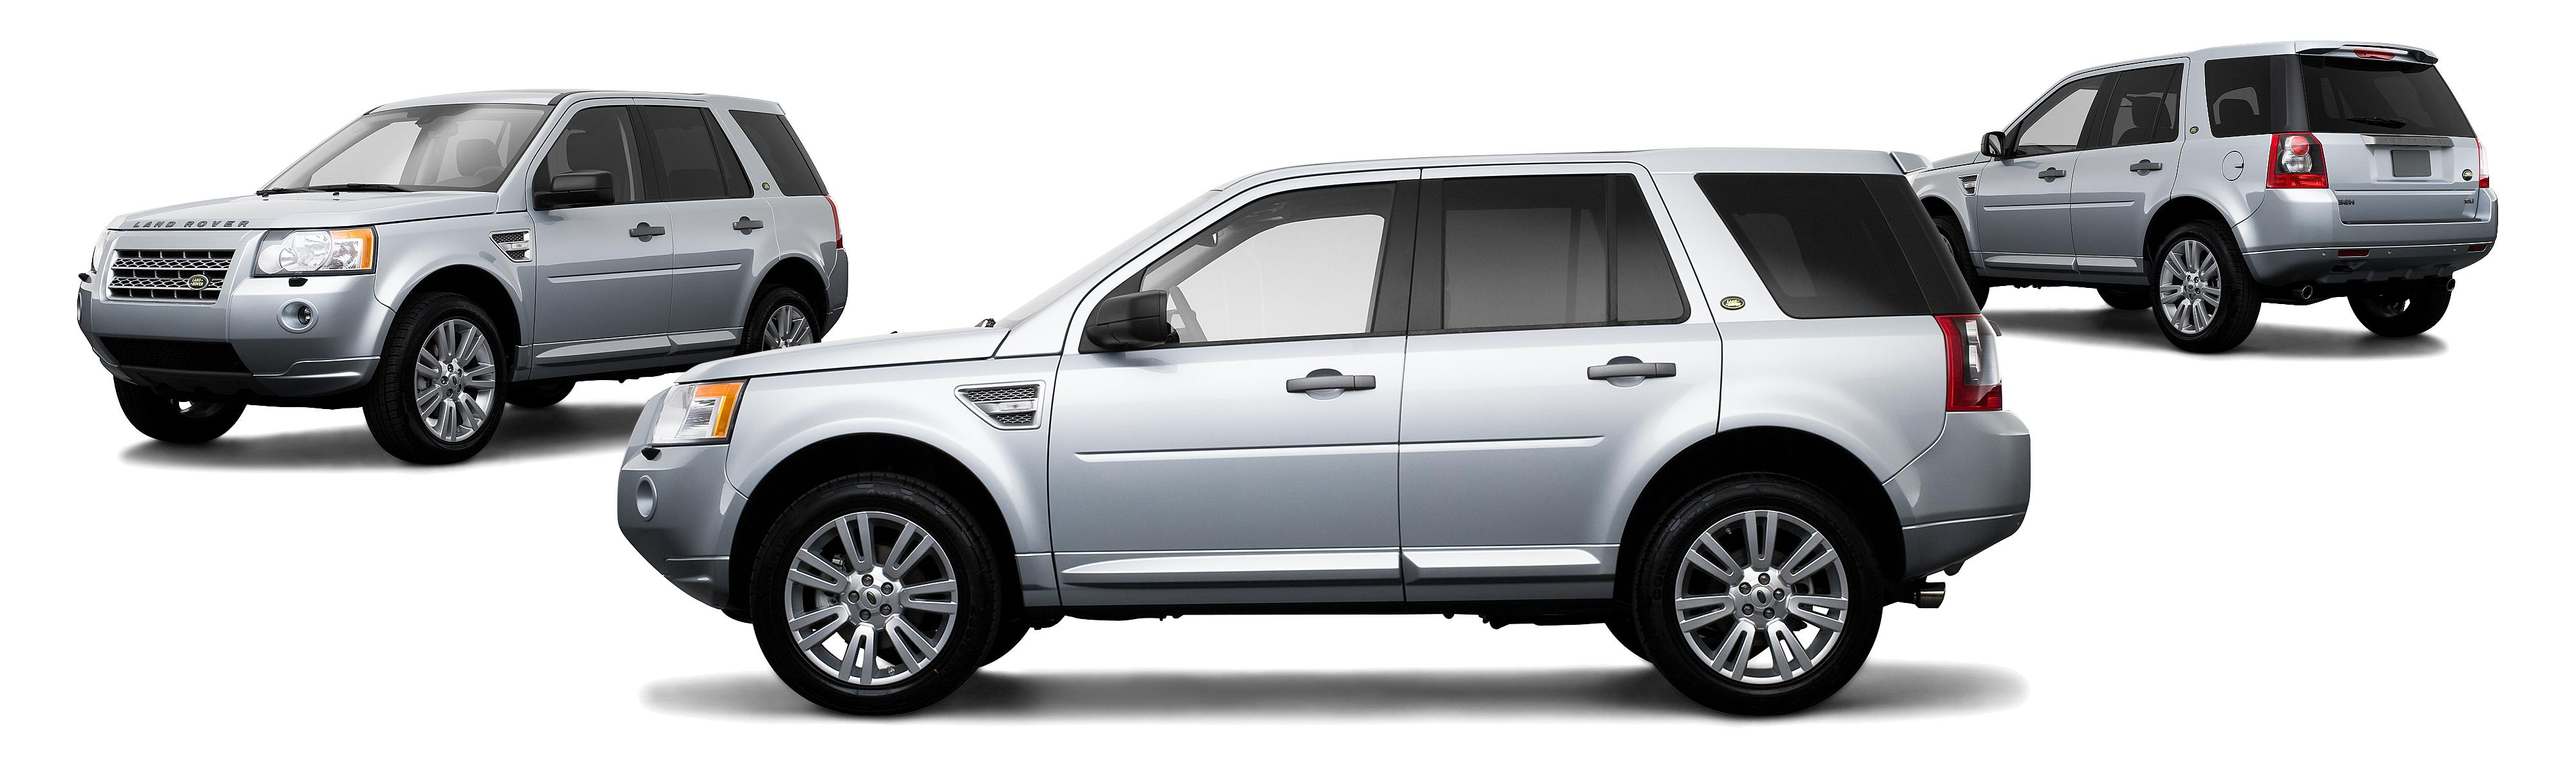 auto driving sport landrover rapha debut discovery with l land price its makes new created news rover